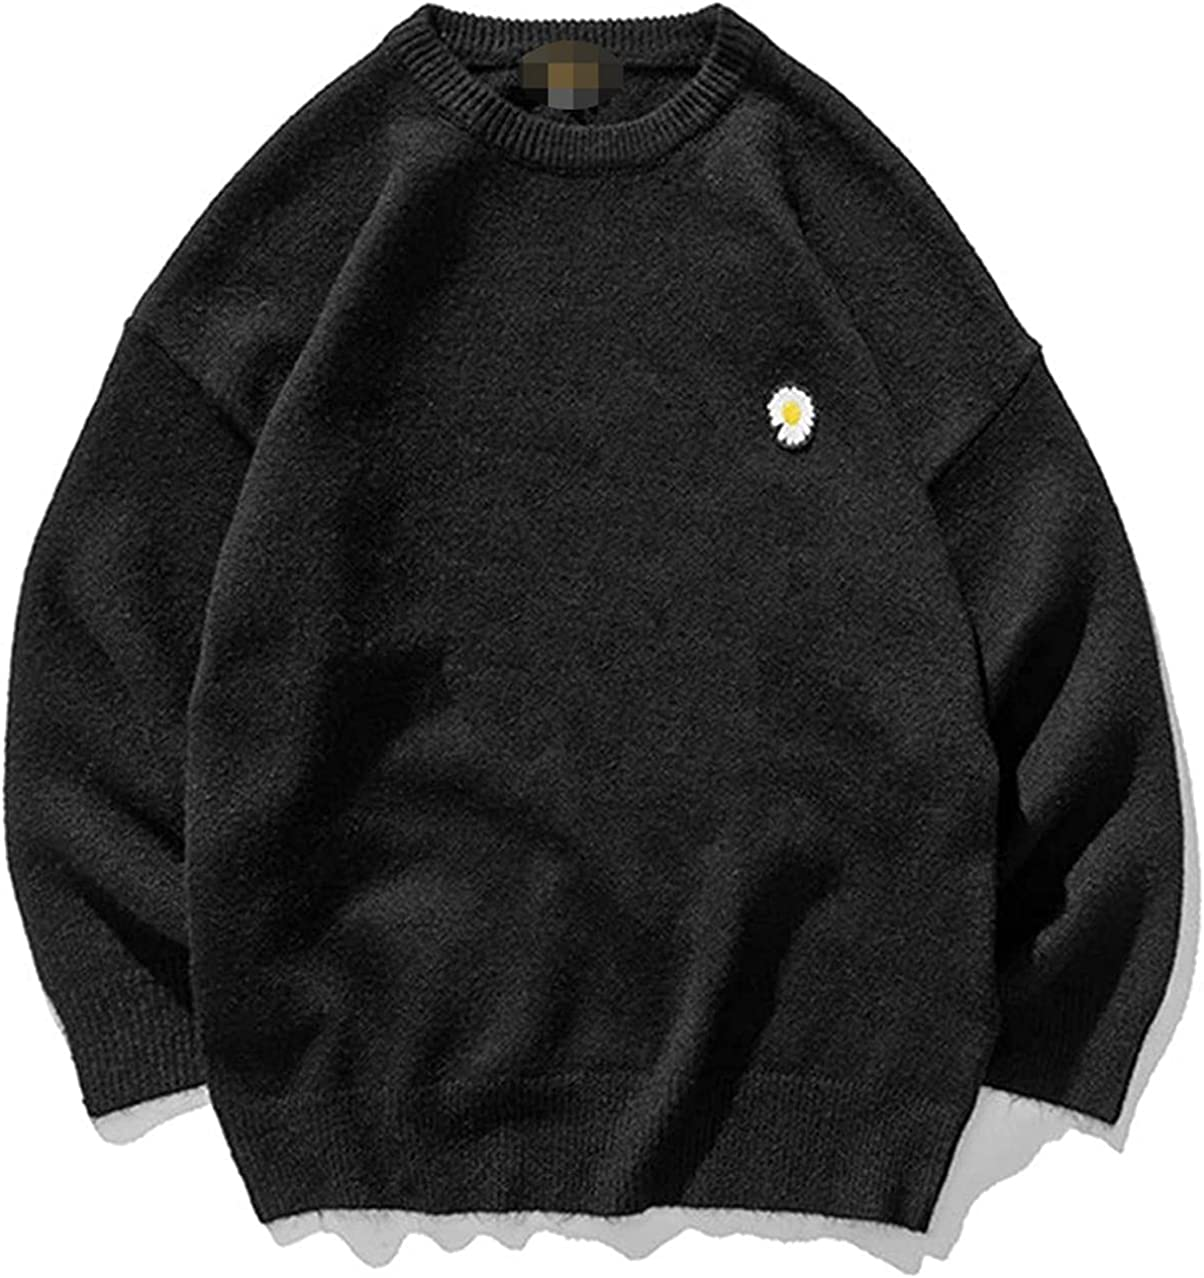 JOAOL Men Harajuku Flower Winter Knitted Sweater Pullover Kpop O-Neck Wool Sweater Casual Clothes